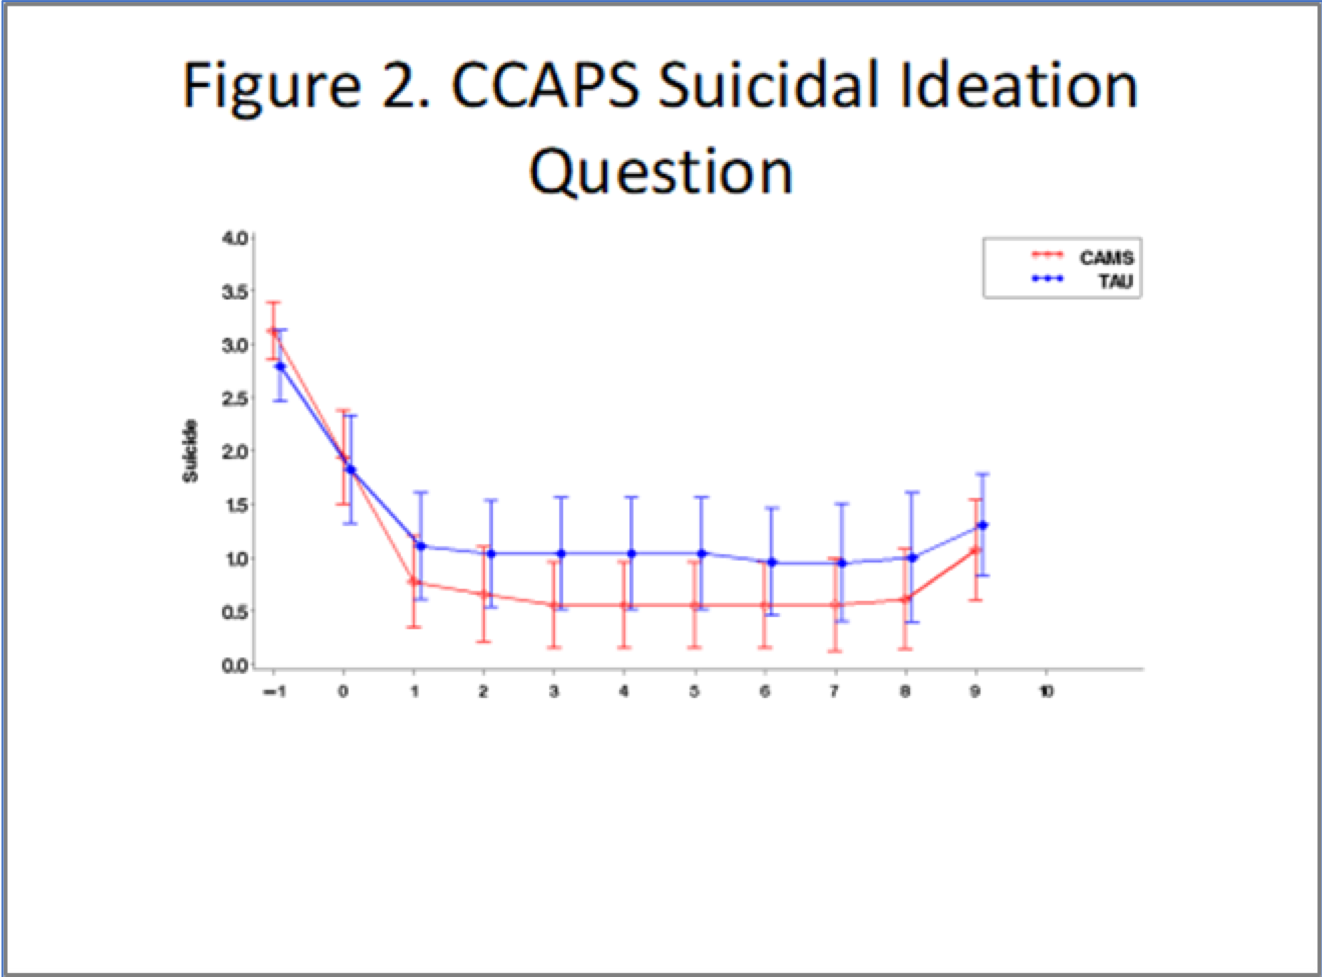 Figure 2. CCAPS Suicidal Ideation Question; Full description appears after image.